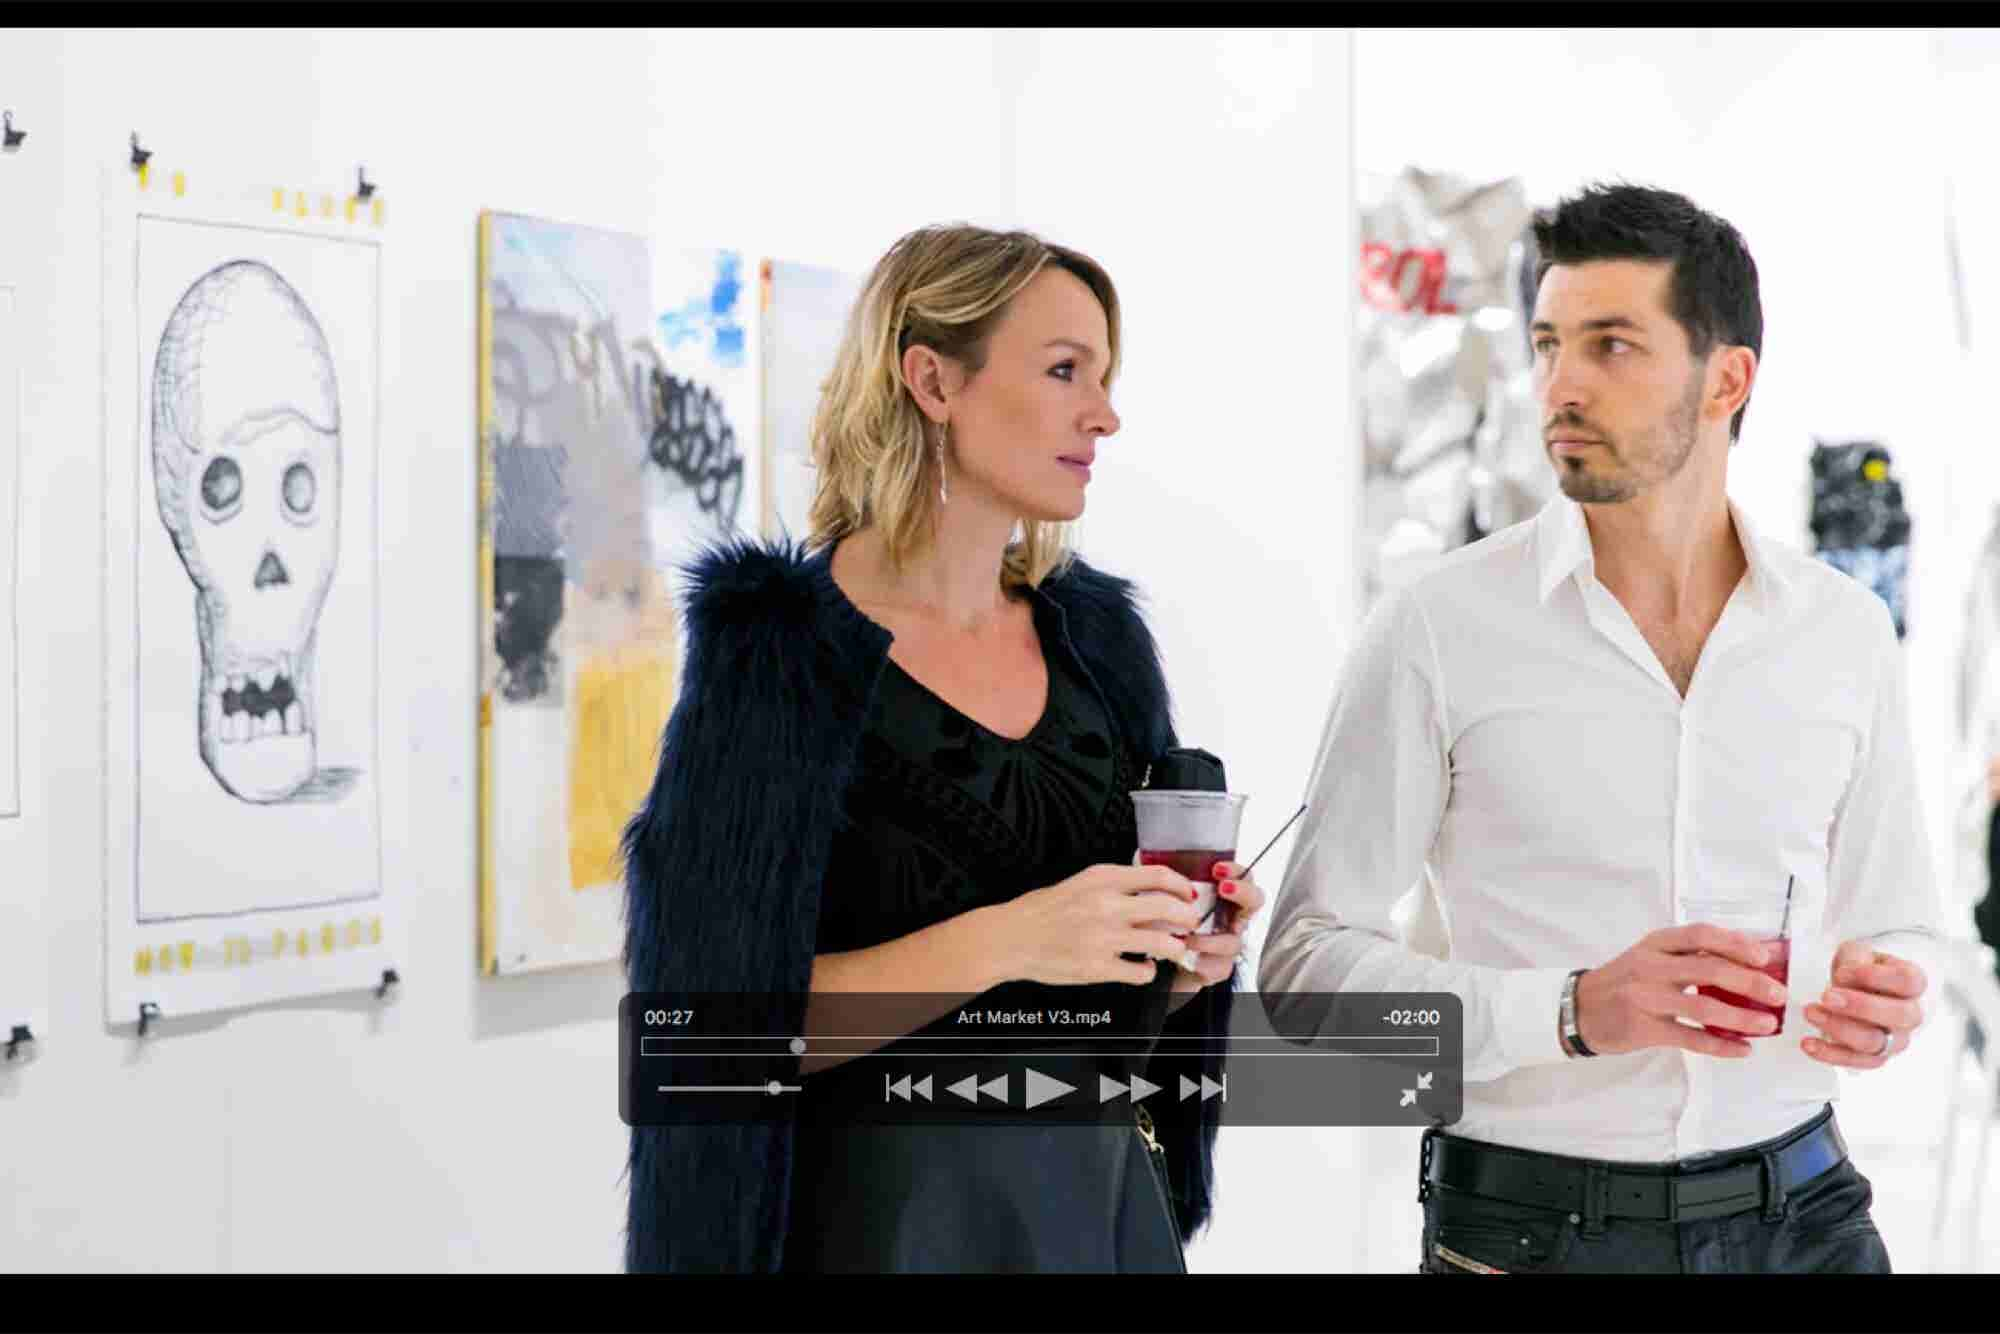 Looking to Invest in Art? Here's an Insider's Take on What's Hot